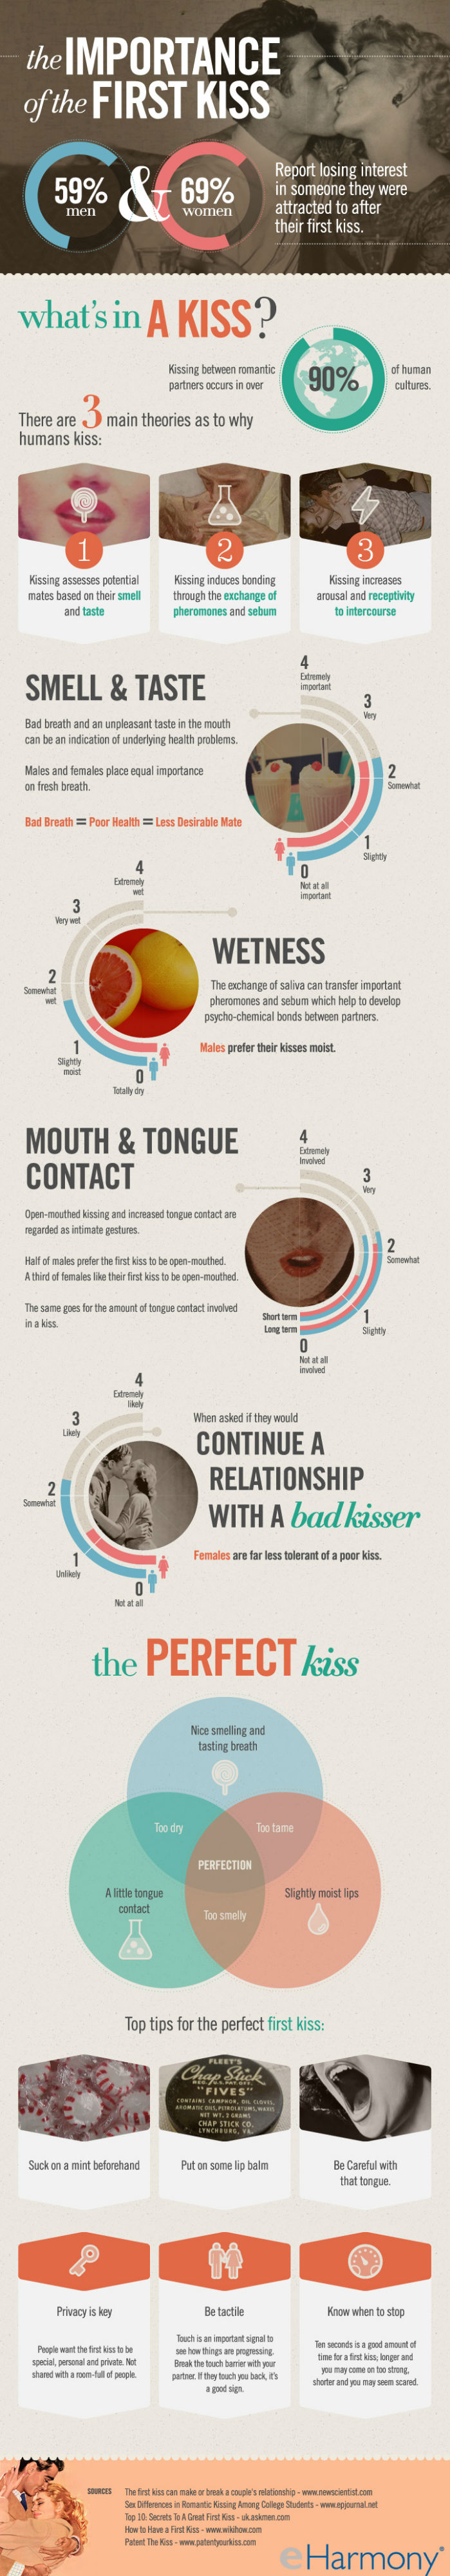 Importance of First Kiss [Infographic]